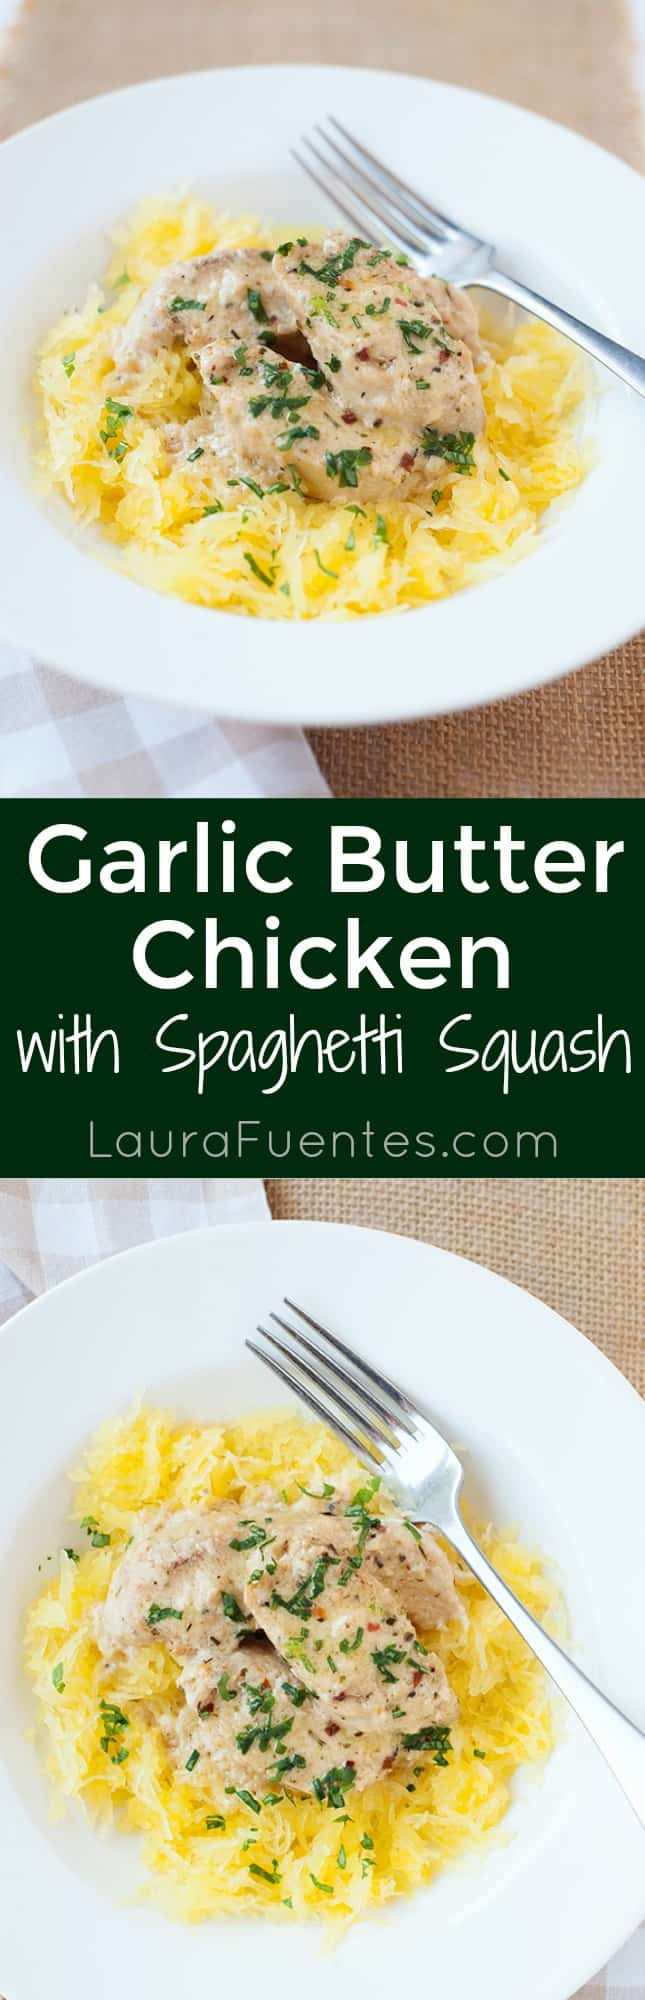 Delicious Garlic Butter Spaghetti Squash with Chicken! Perfect for family dinner.